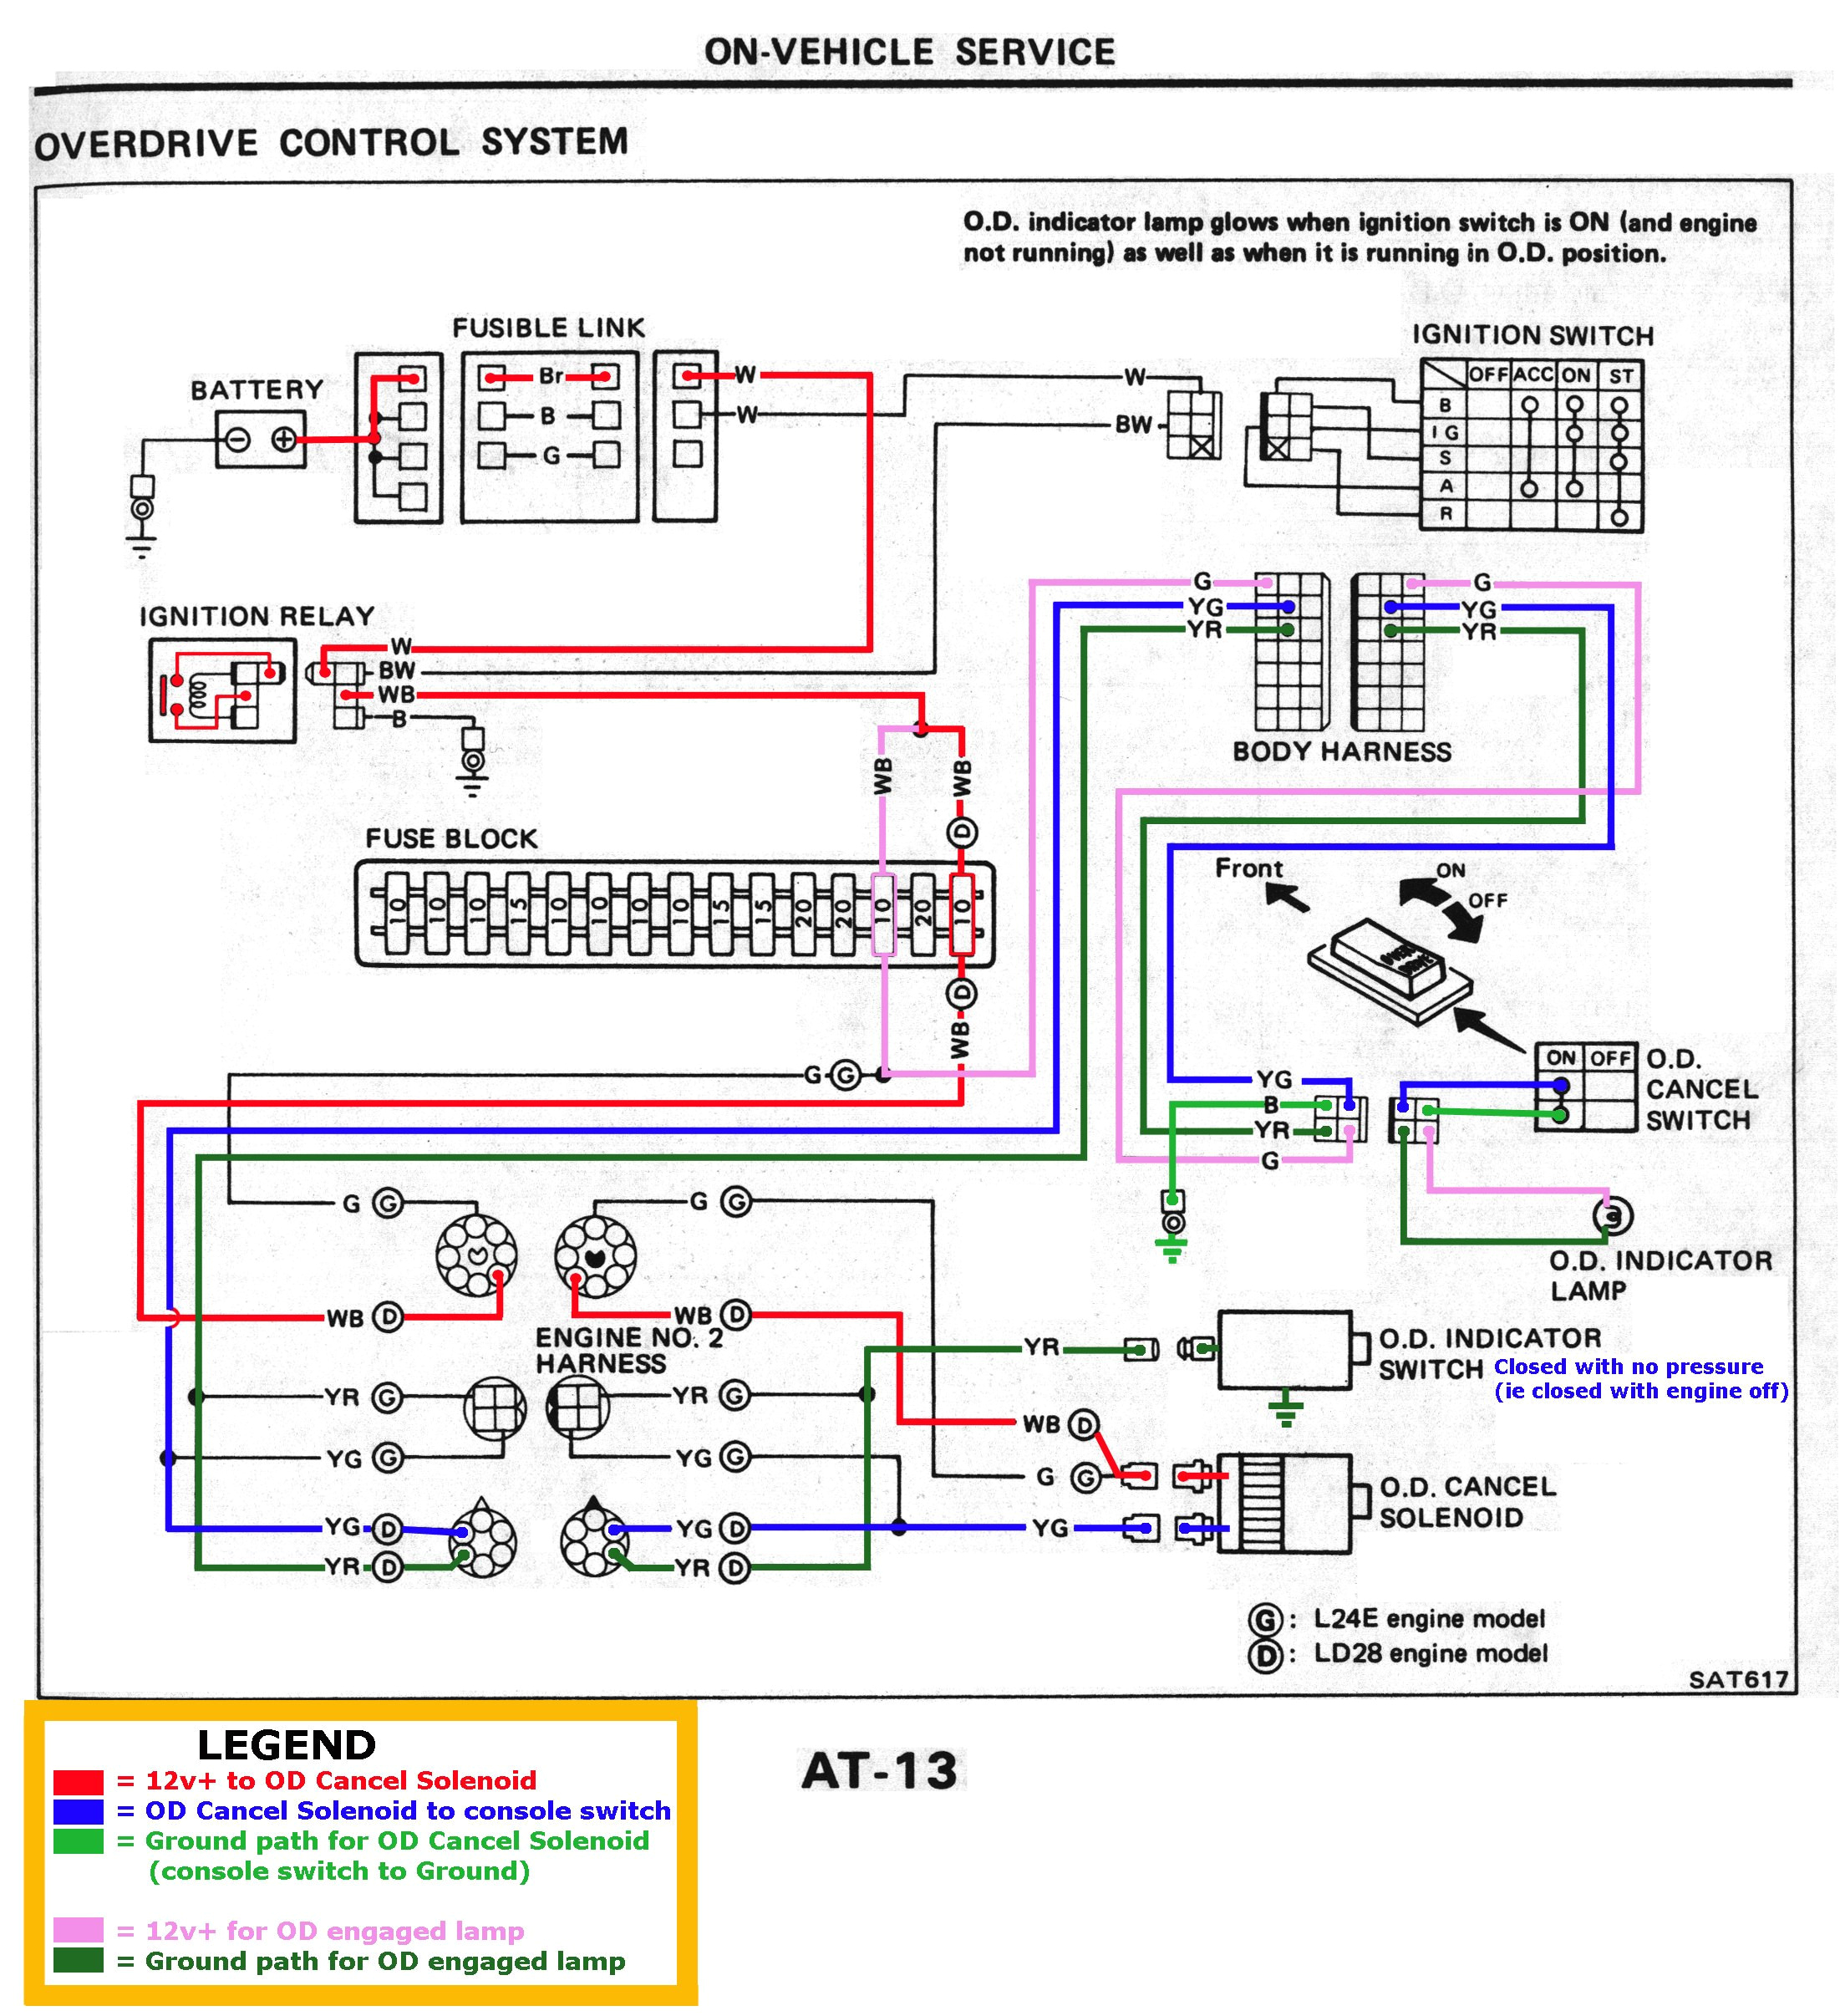 89 300zx tach wiring diagram wiring diagrams global 89 300zx tach wiring diagram